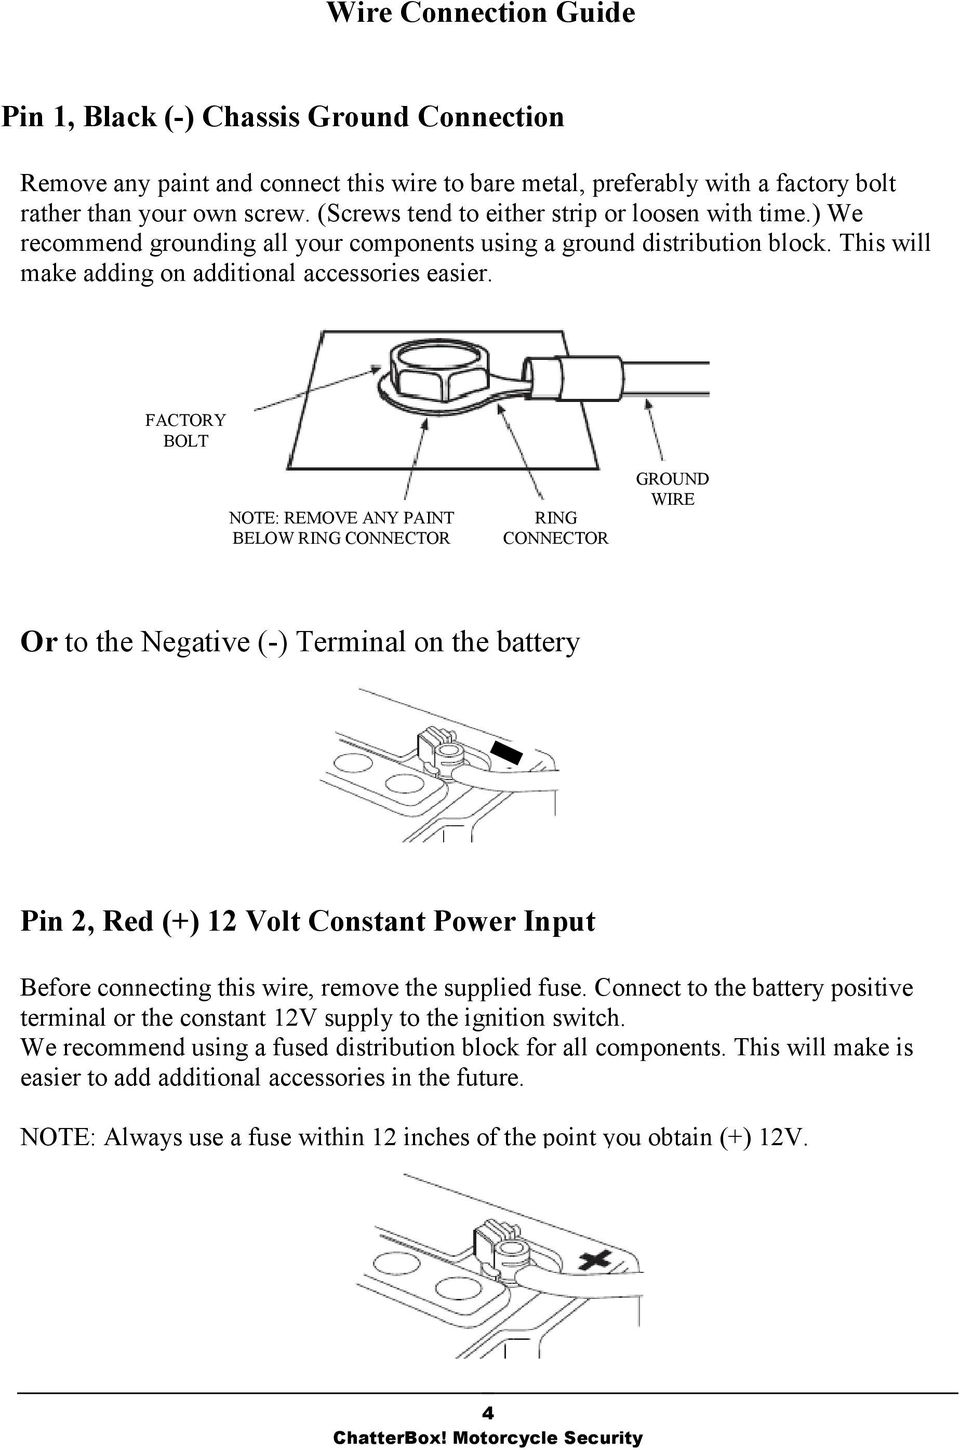 I Chatterbox Motorcycle Security Pdf 12 Volt Negative Ground Wiring Factory Bolt Note Remove Any Paint Below Ring Connector Wire Or To